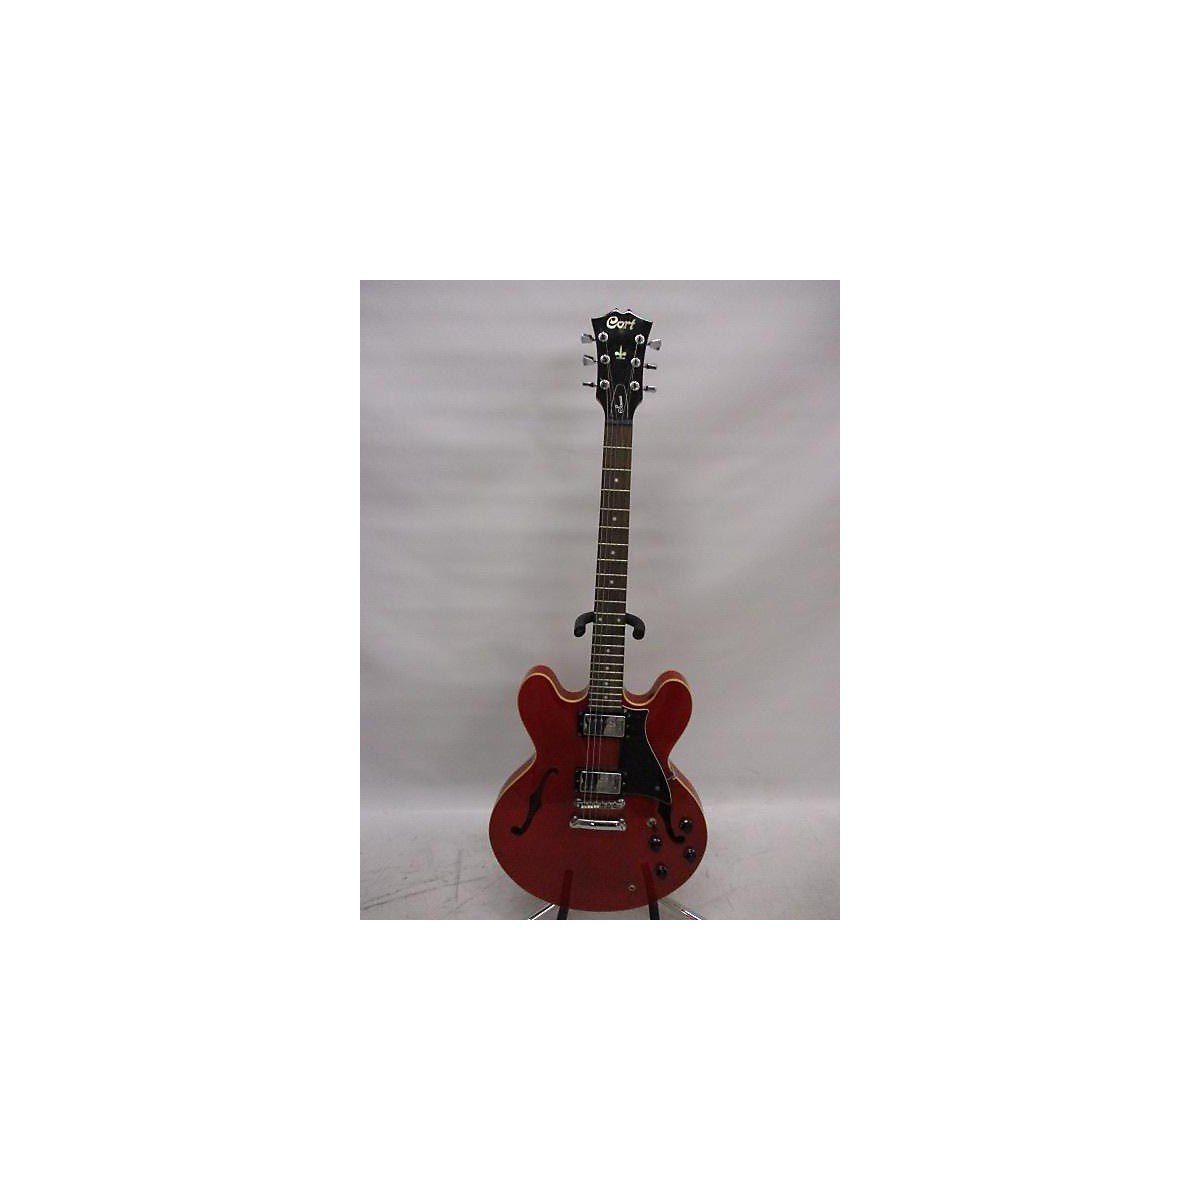 In Store Used Used Court Source Candy Apple Red Hollow Body Electric Guitar